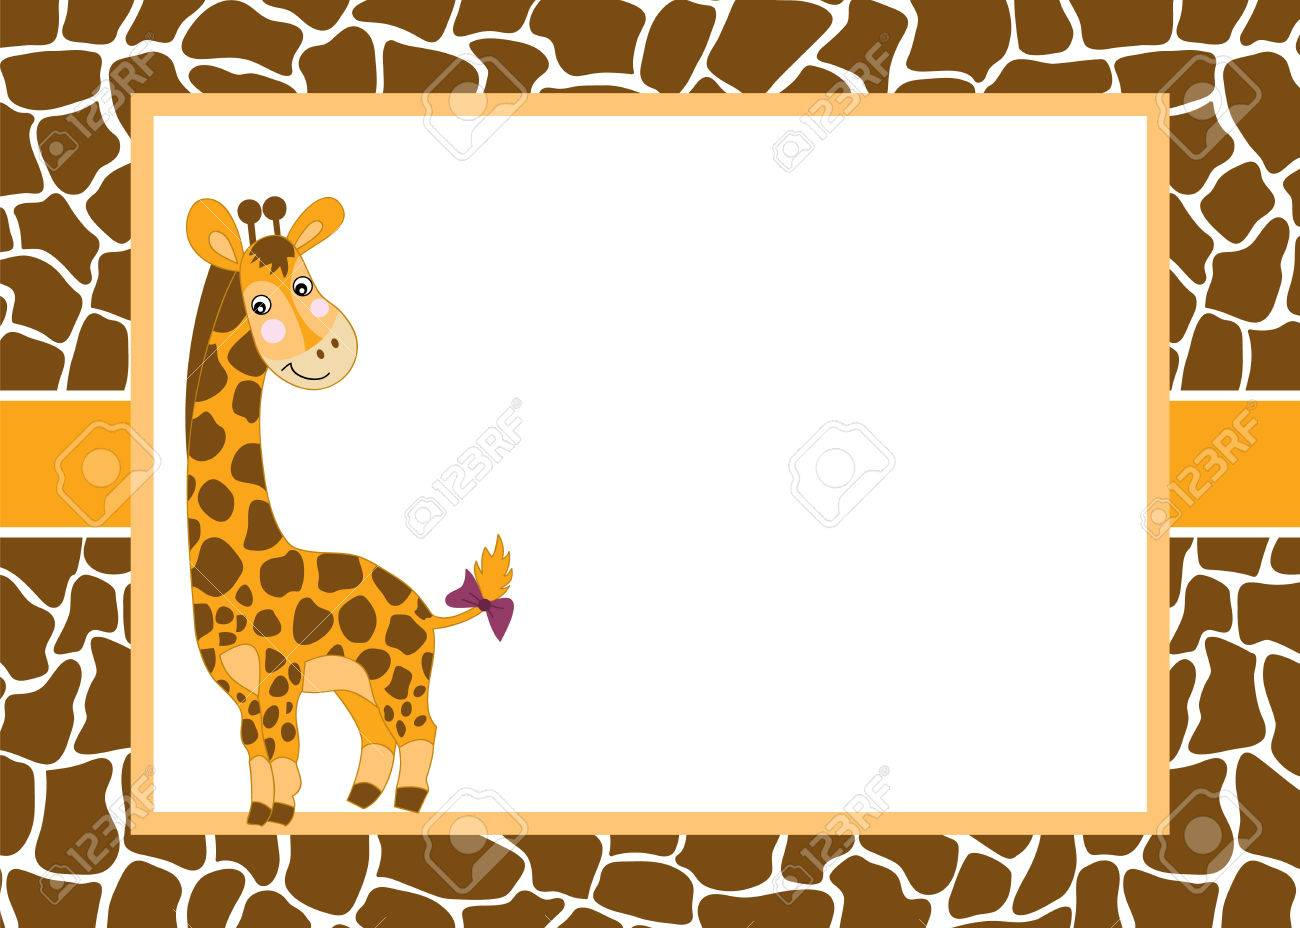 Vector Card Template With A Cute Baby Giraffe On Spotted Skin ...